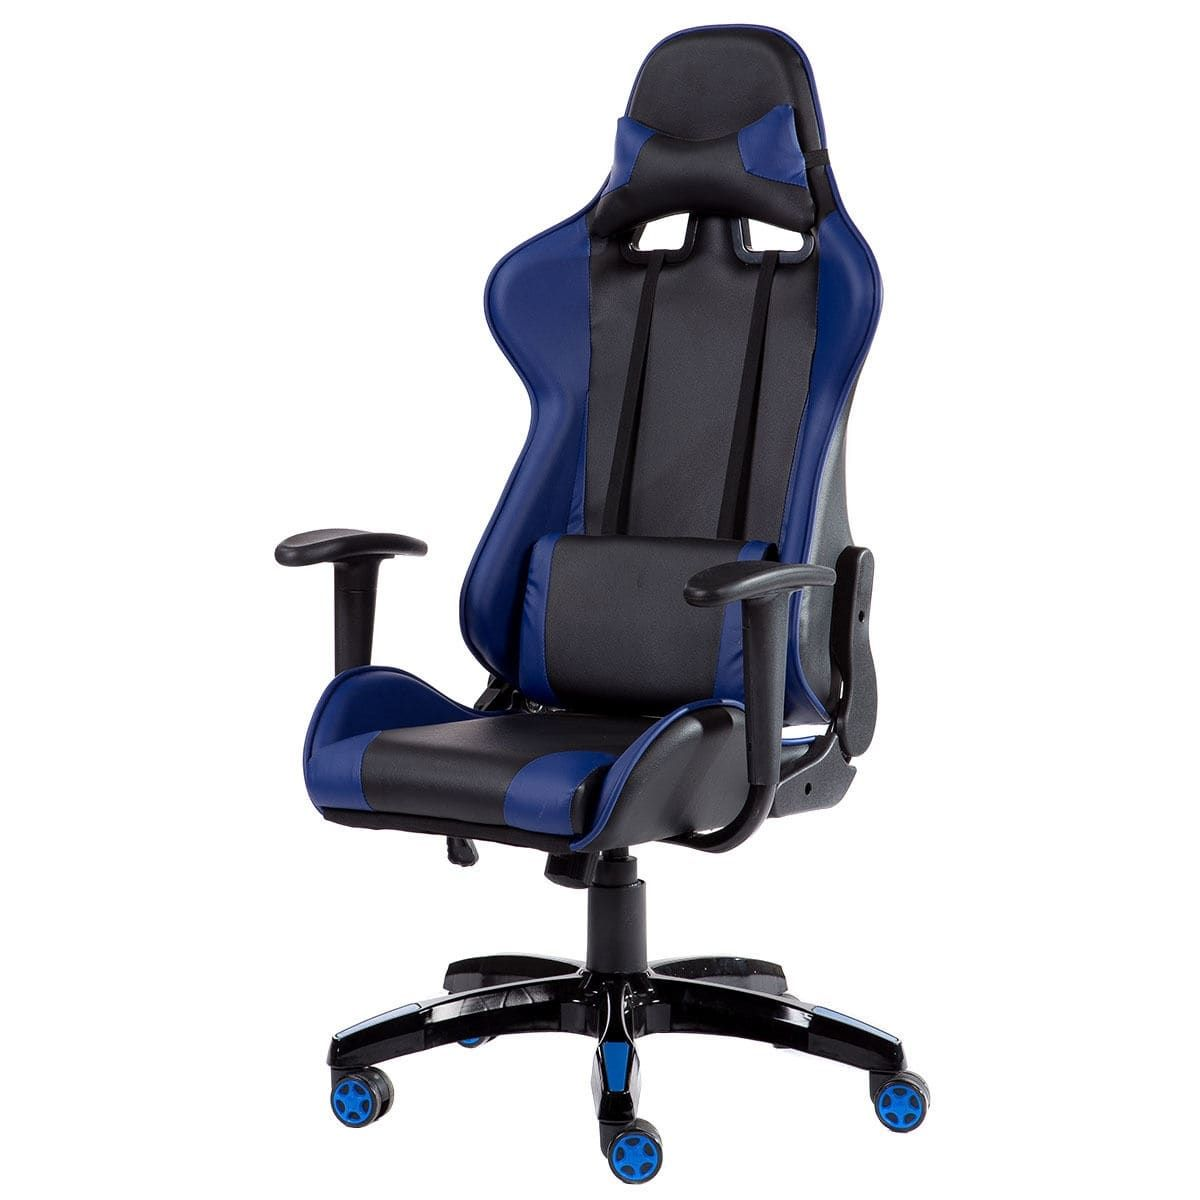 Costway high back racing style gaming chair reclining office